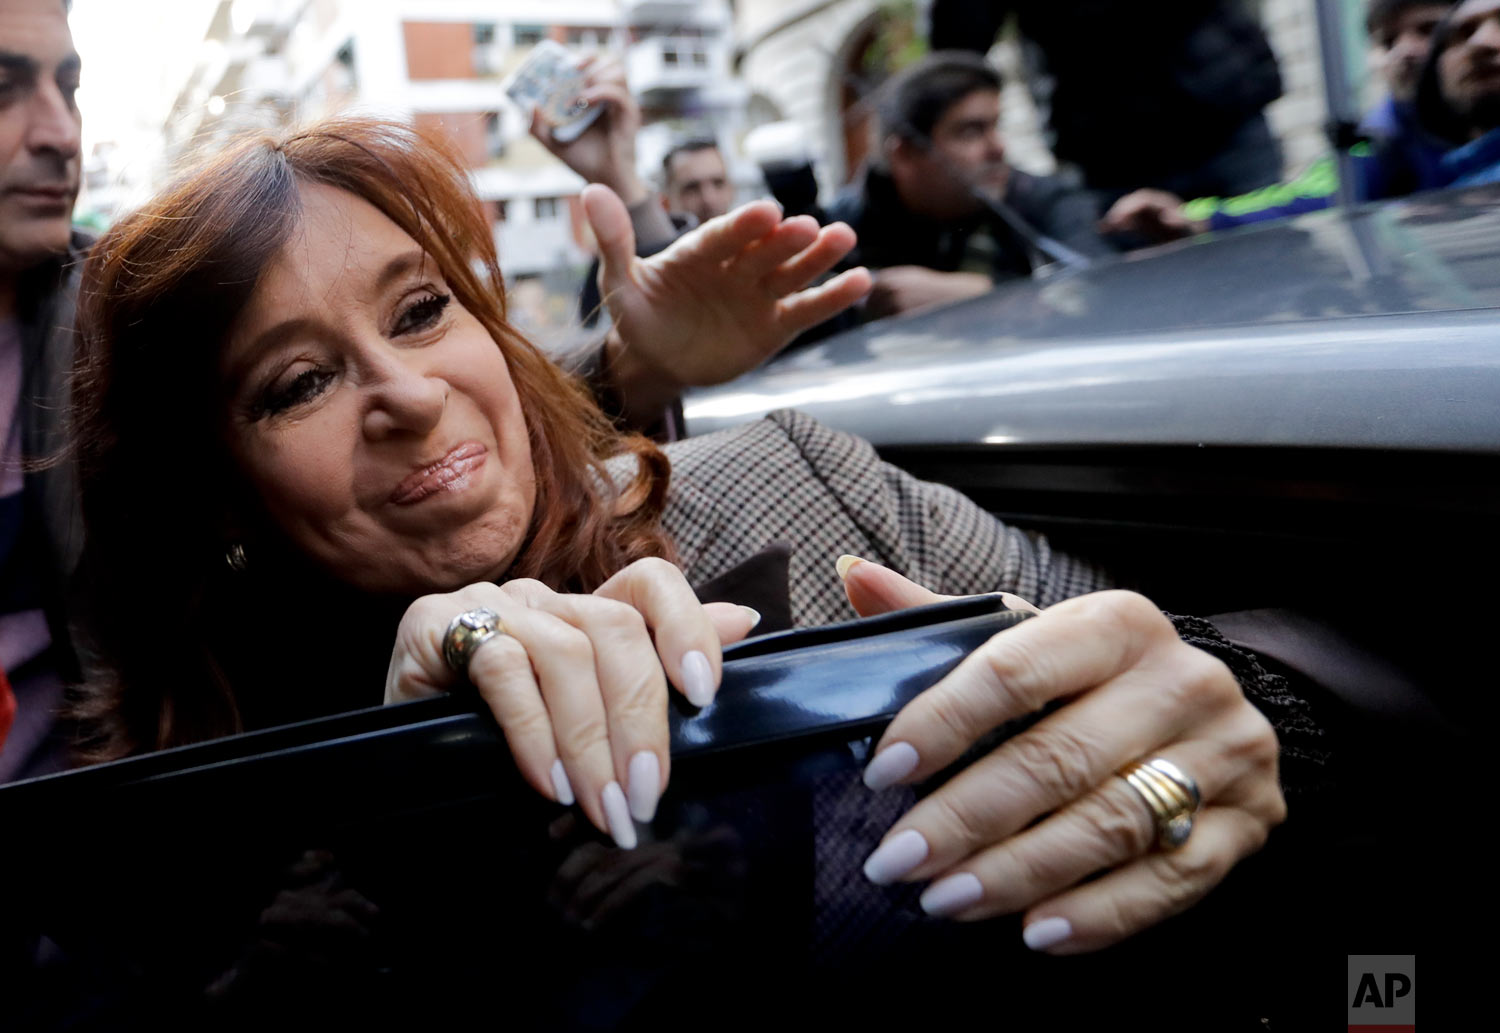 Argentina's former President Cristina Fernandez gets into a car to go to a court hearing in Buenos Aires, Argentina, Aug. 13, 2018. Fernandez is expected to give testimony as part of a corruption probe sparked by the recent release of an investigation on illicit dealings during the governments of the ex-president, her late husband and predecessor, Nestor Kirchner.  (AP Photo/Natacha Pisarenko)